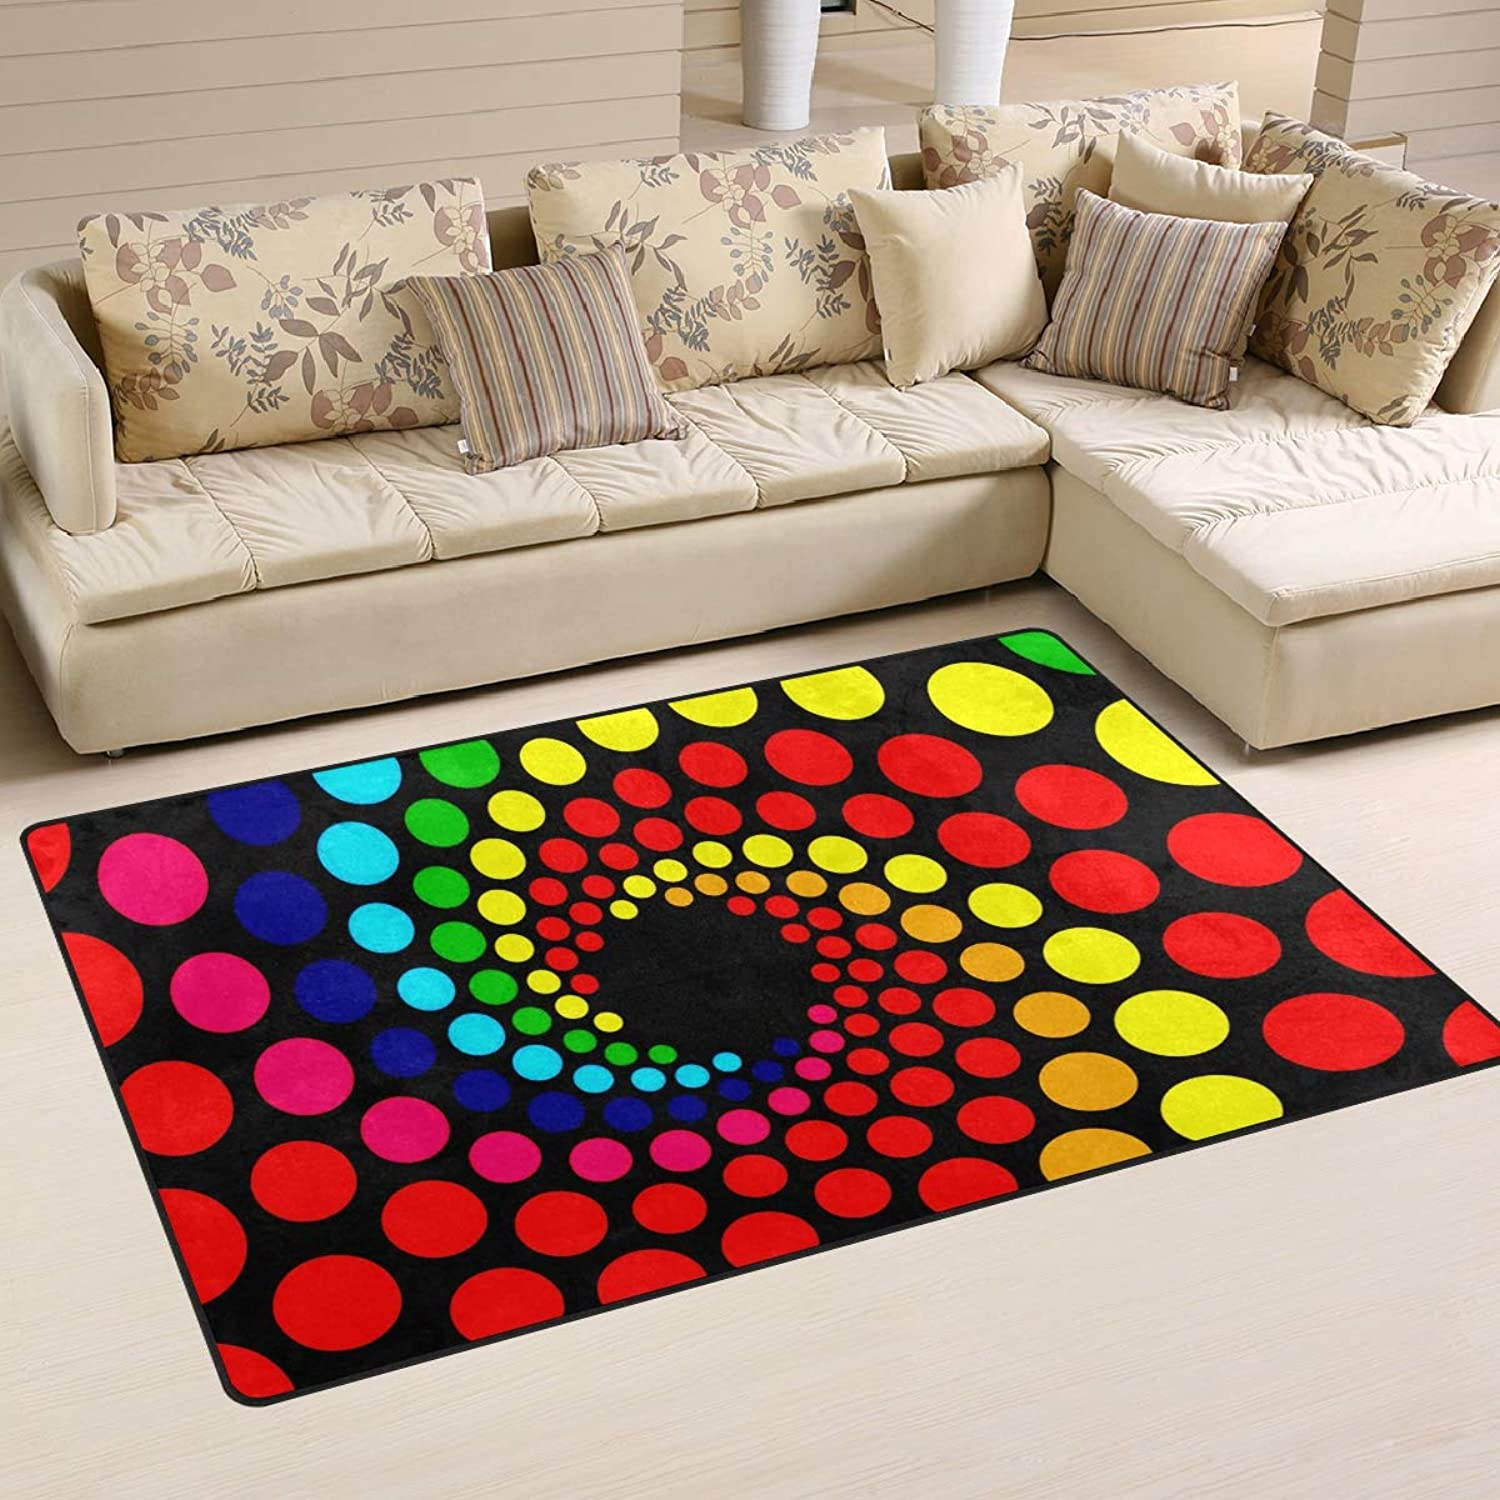 Area Rugs Doormats Art Rainbow Dot Spiral 5'x3'3 (60x39 Inches) Non-Slip Floor Mat Soft Carpet for Living Dining Bedroom Home